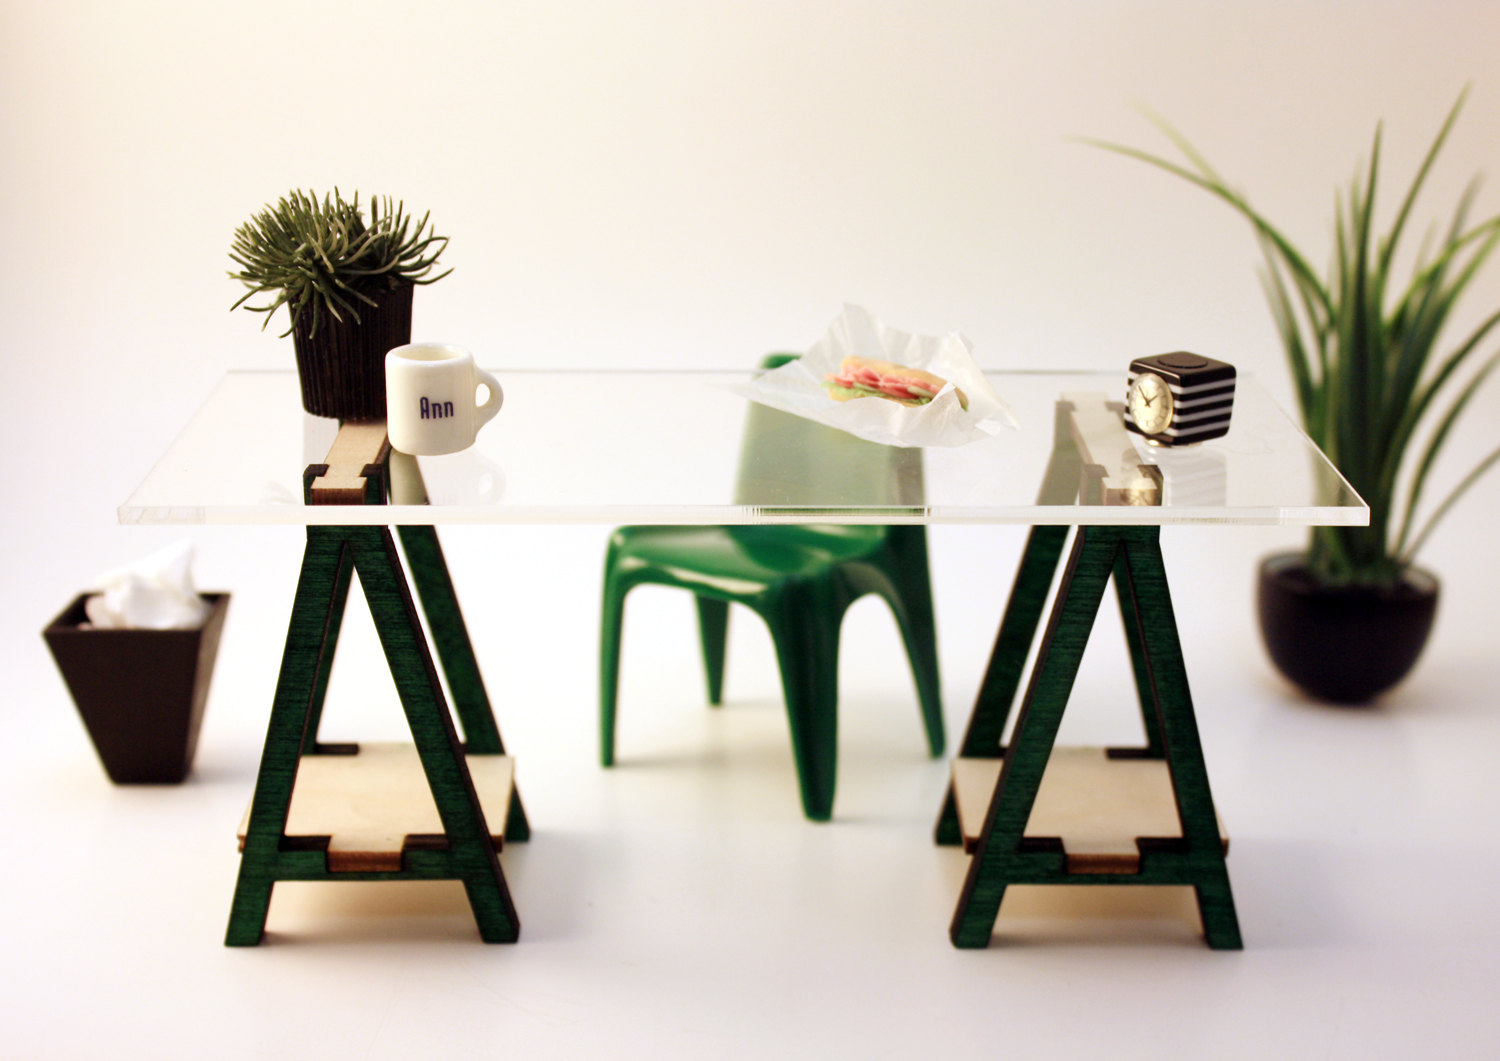 Mini ikea dollhouse furniture is whats missing in your life right now